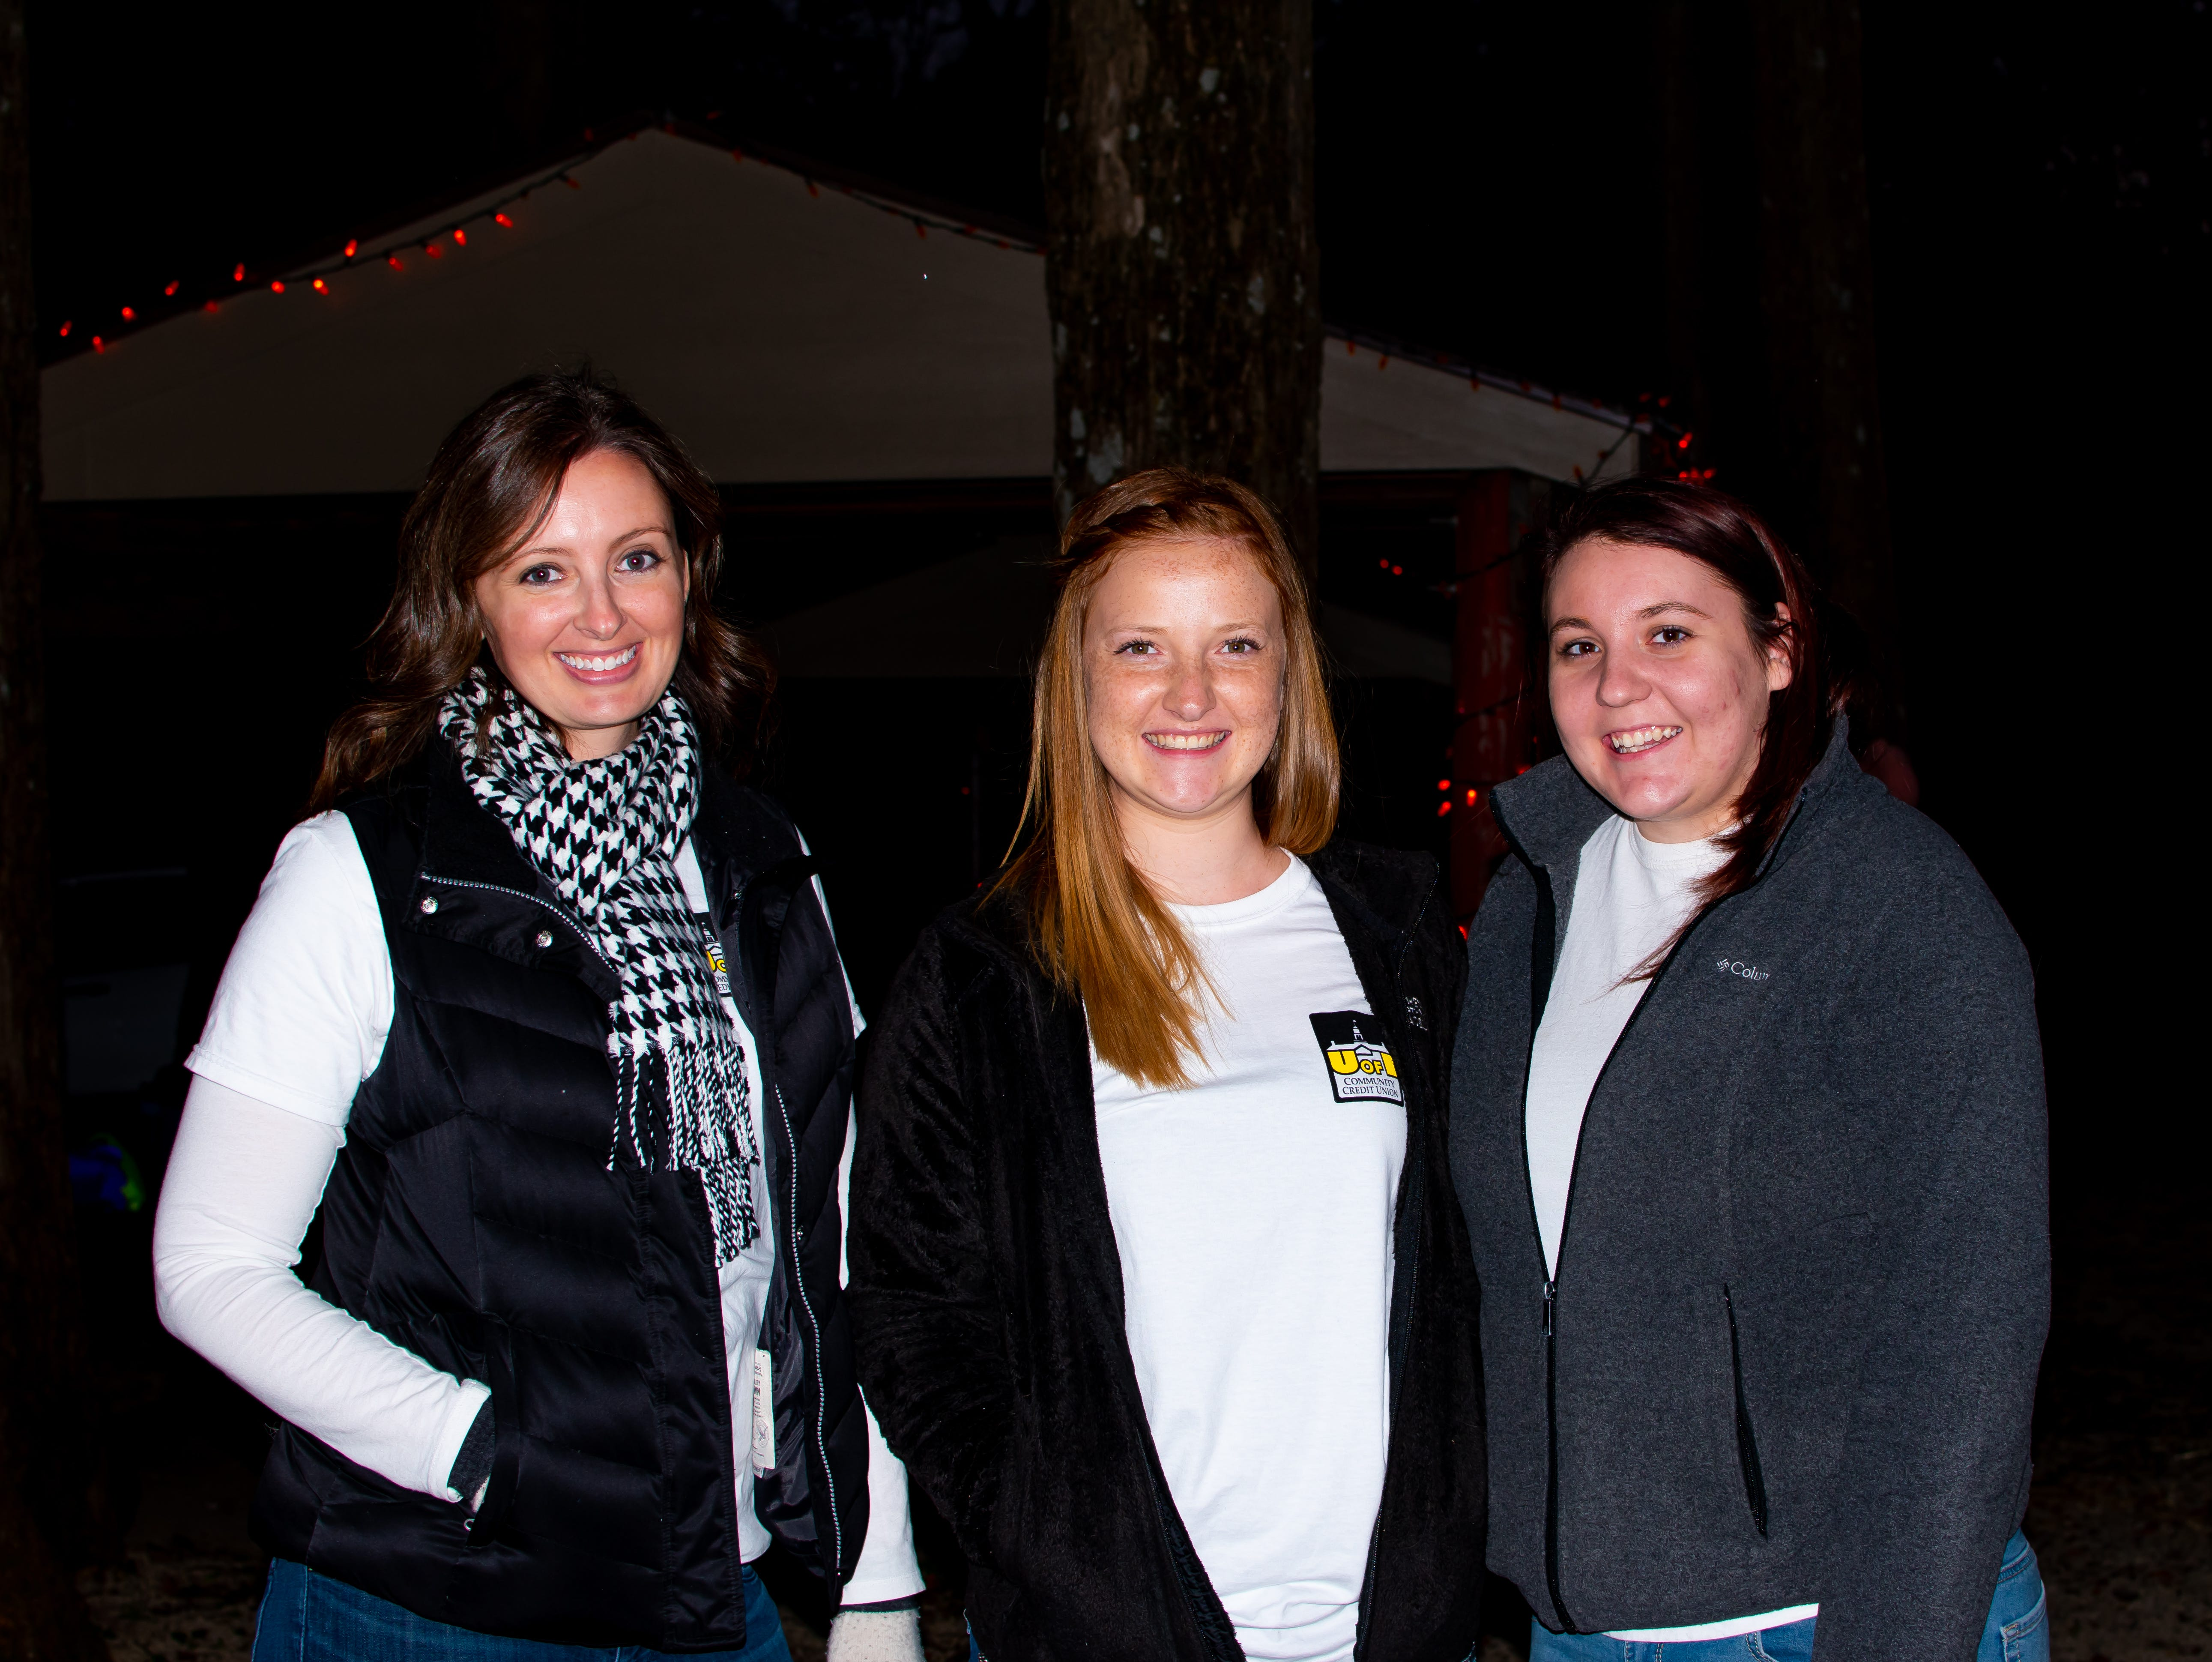 Jolisa Fagen, of Waukee, Sarah Balk, of Van Meter, and Cassidy Benedict, of Redfield attend Tuesday, Oct.16, 2018 for the Waukee Area Chamber of Commerce fall after hours party at Timberline Campground in Waukee.